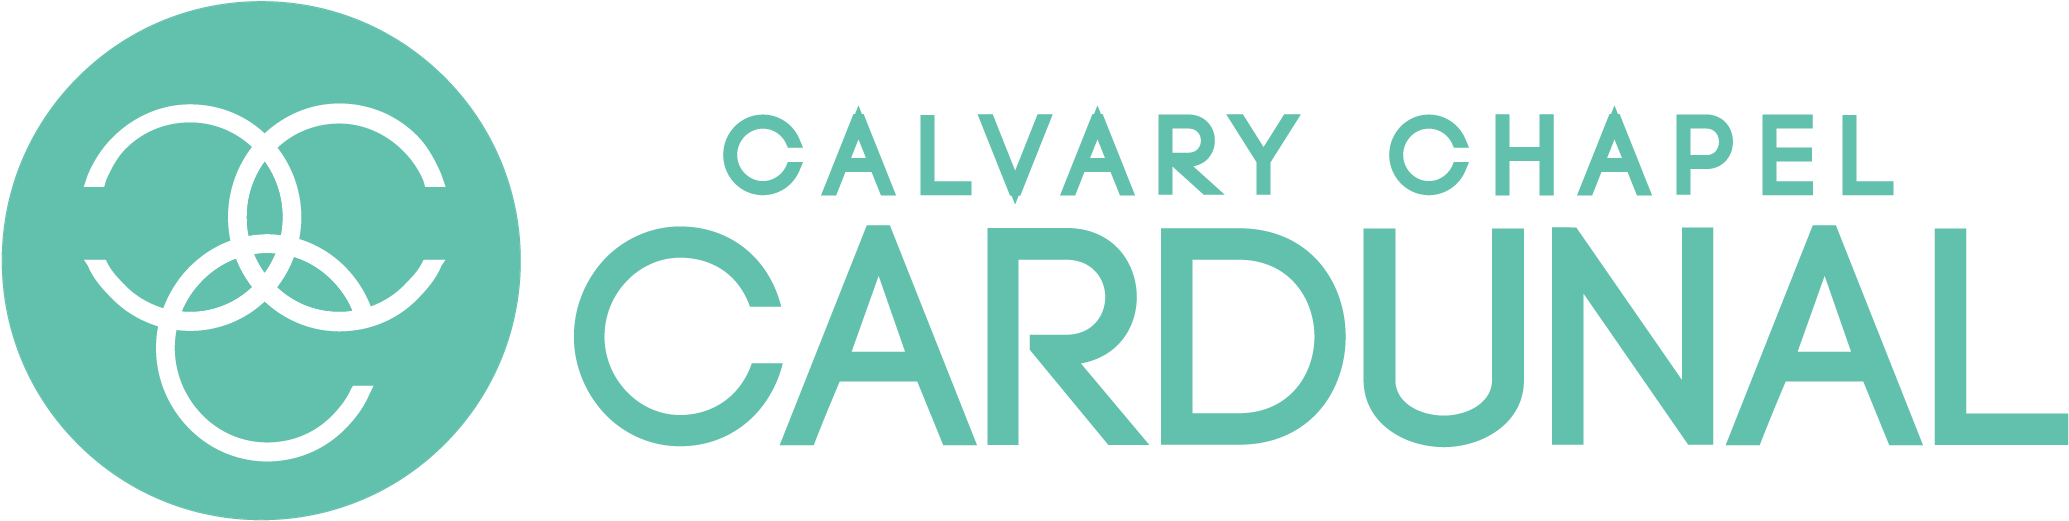 Download HD Calvary Chapel Cardunal - Welcare Hospital